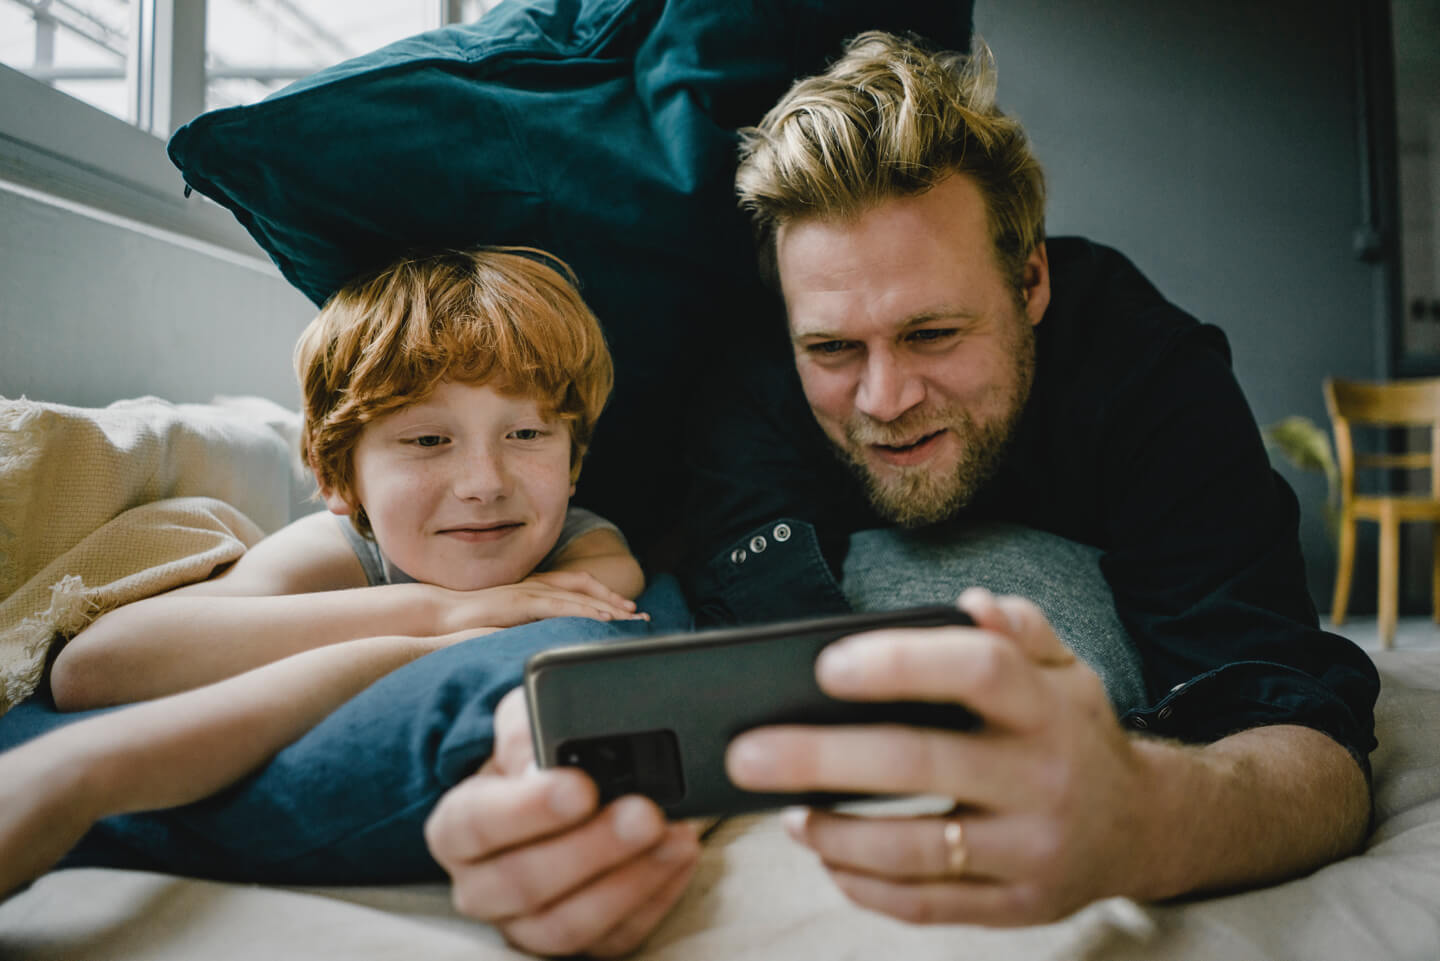 3 Ways Parents Can Boost Their Family's Digital Security